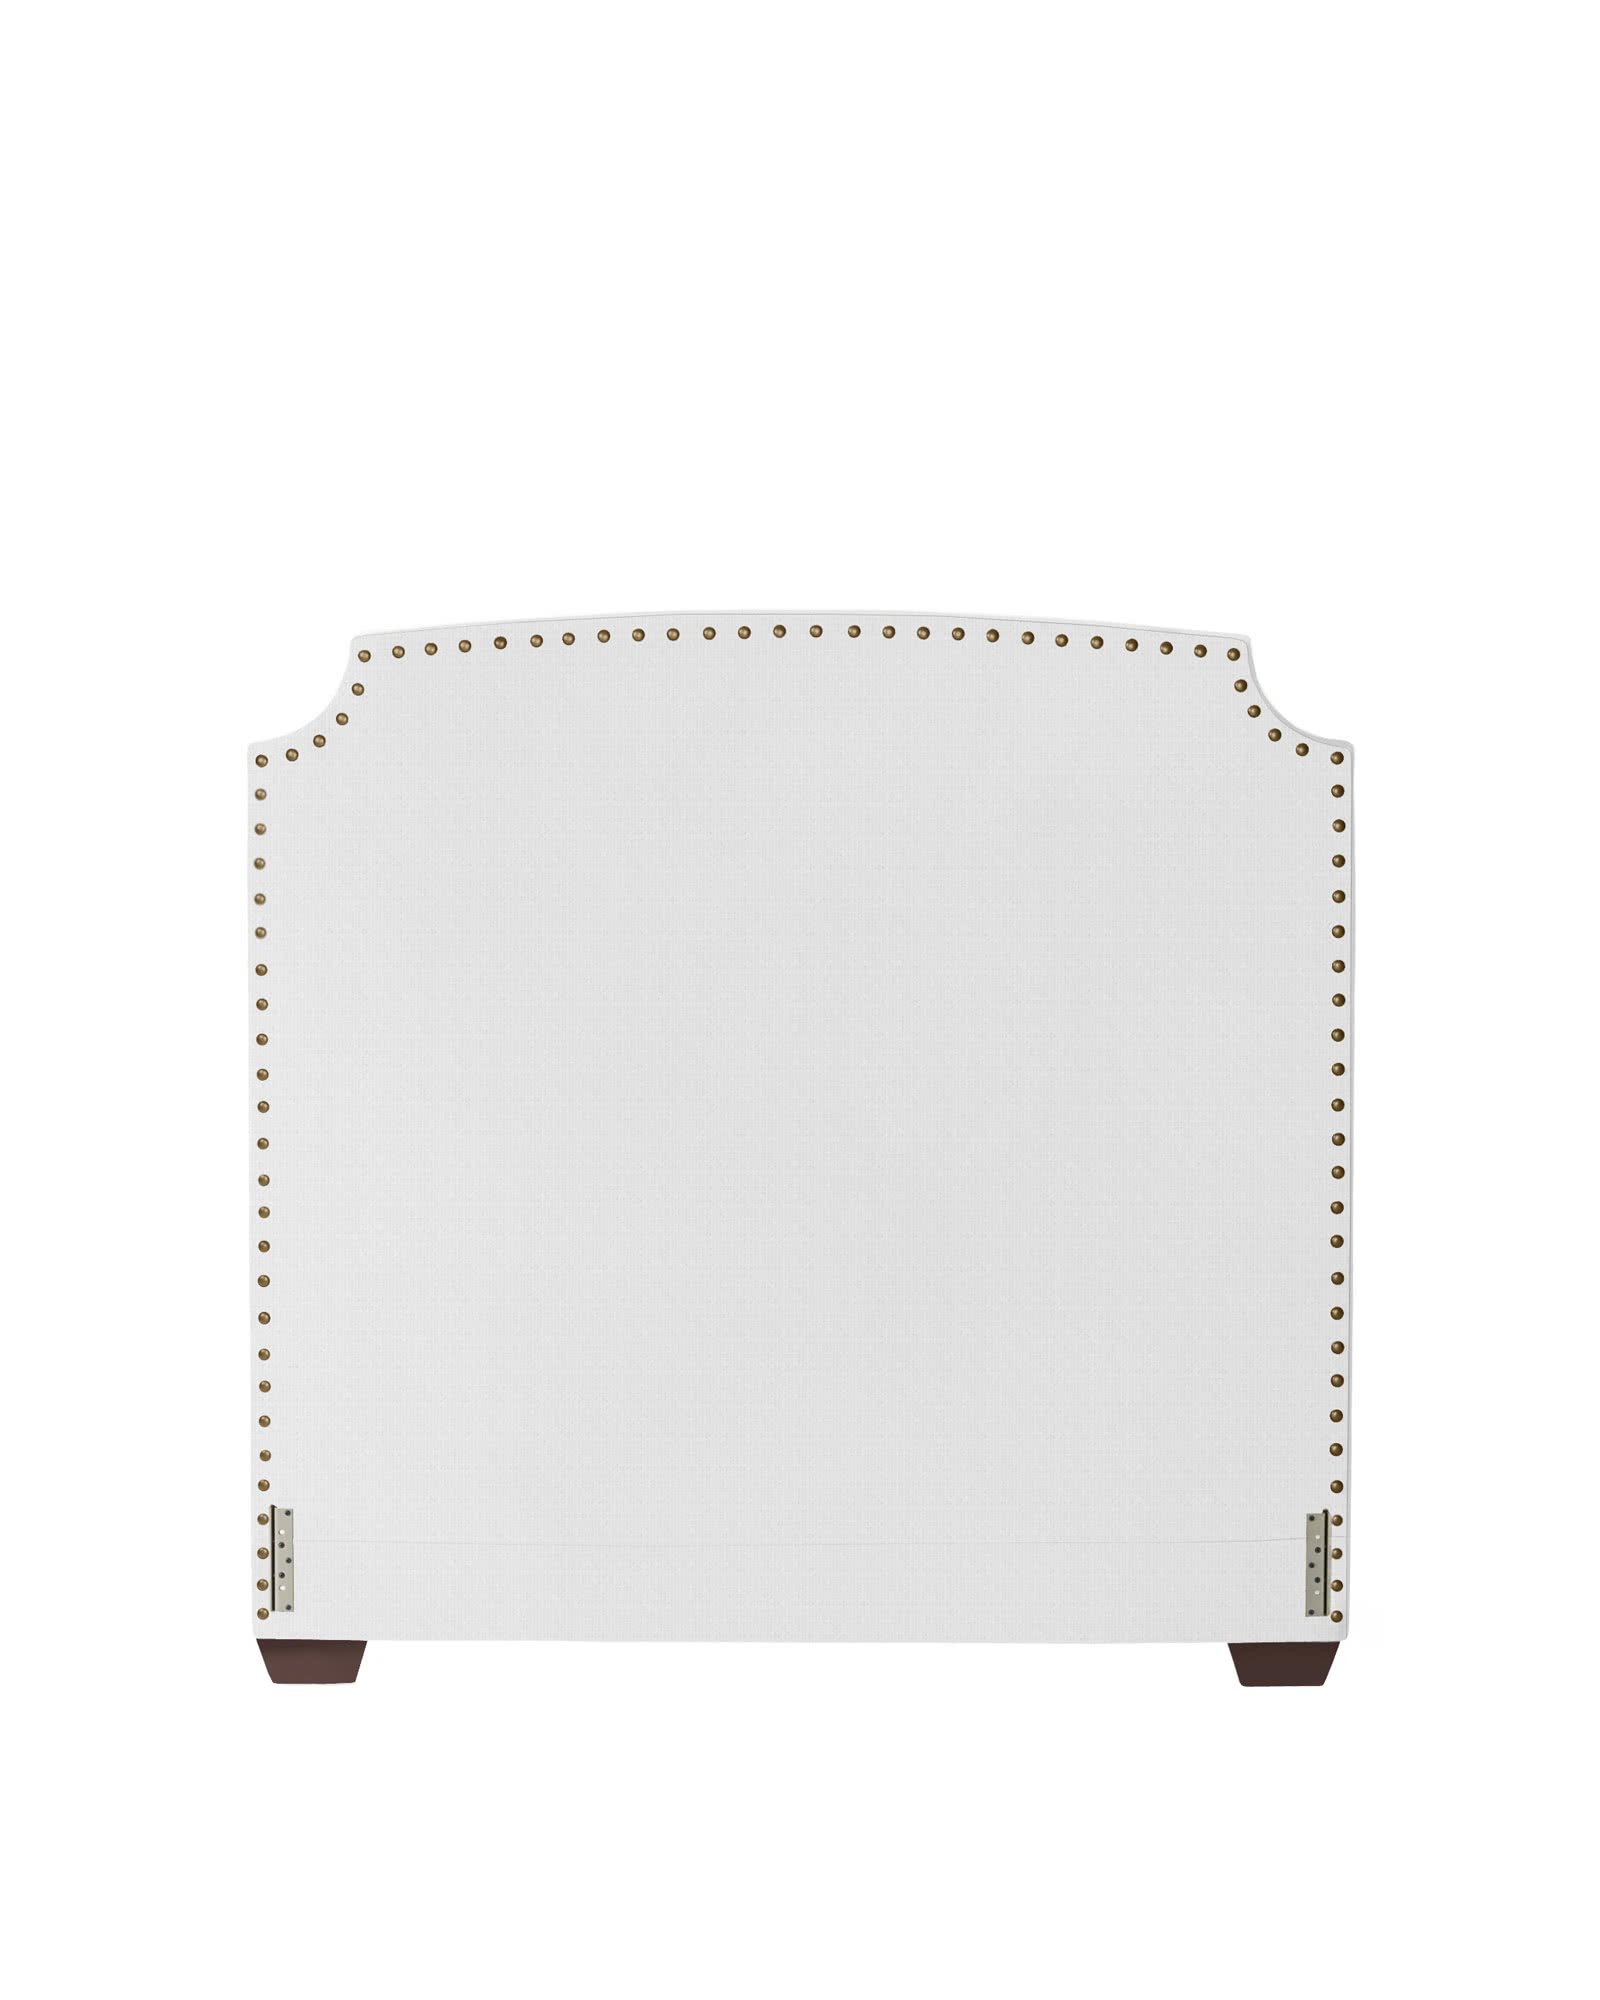 Tall Fillmore Headboard with Nailheads,